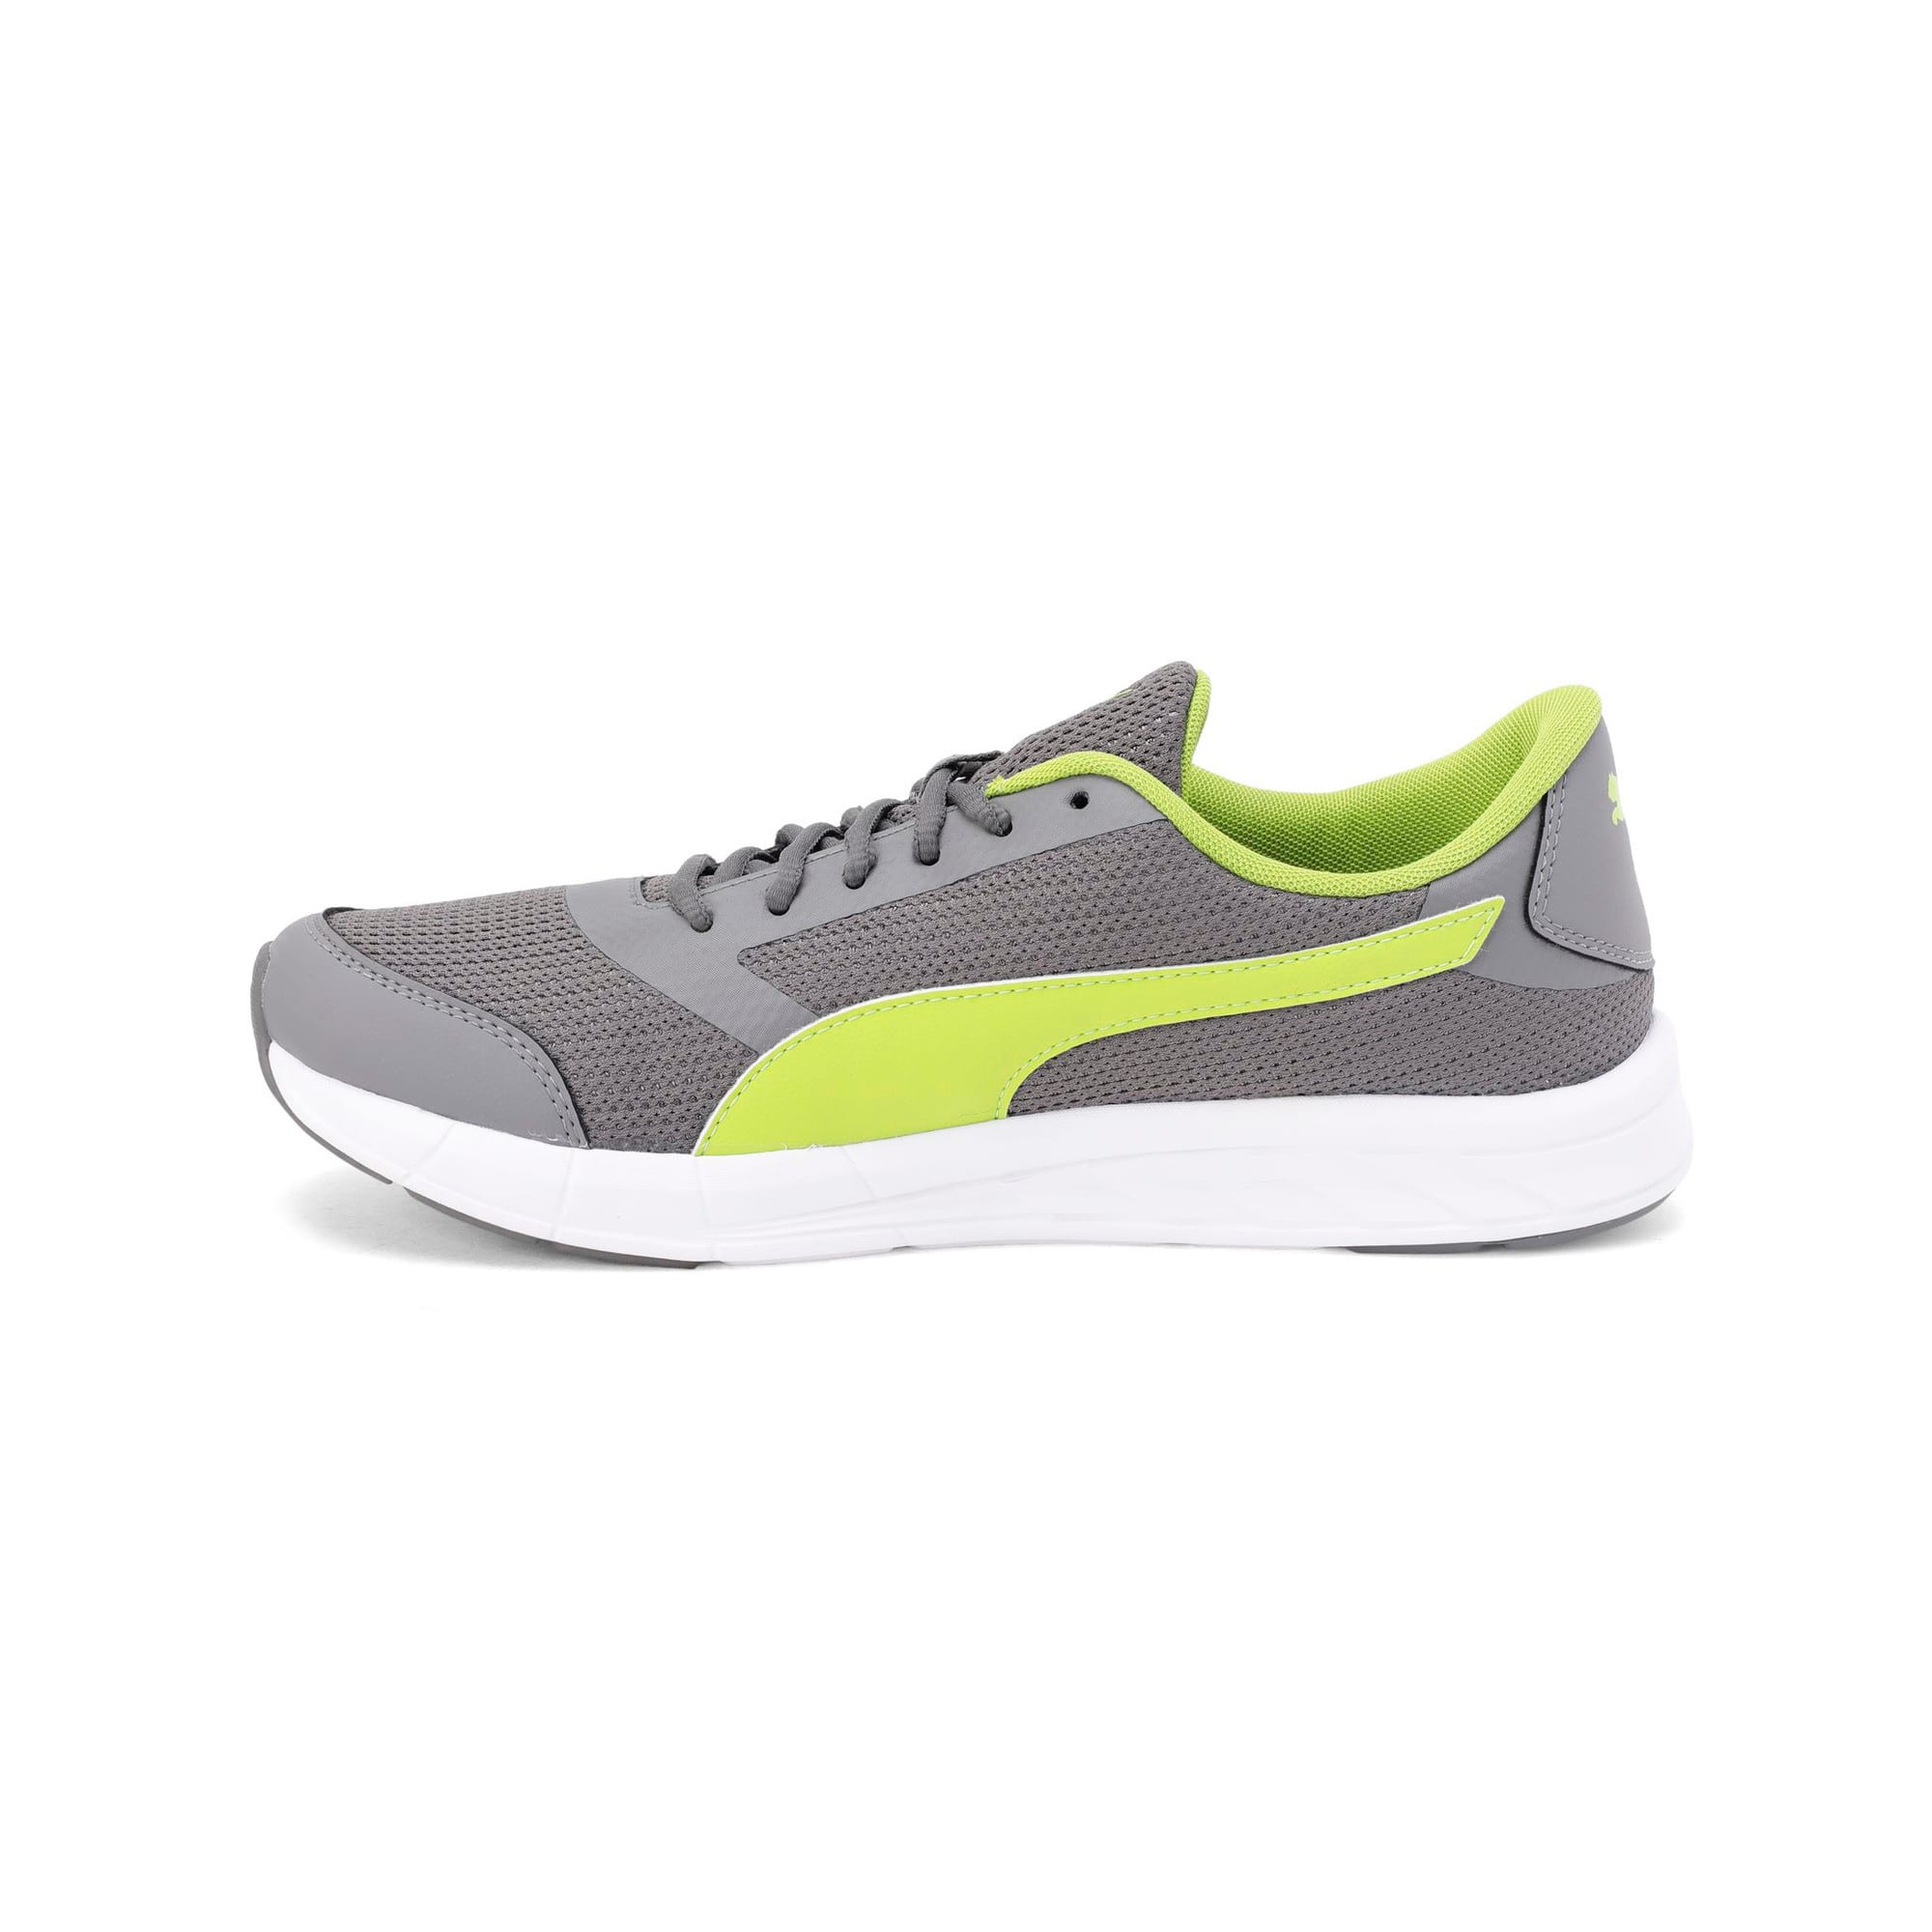 Thumbnail 1 of Solar V IDP Puma Black-Puma White, Charcoal Gray-White-Lime, medium-IND